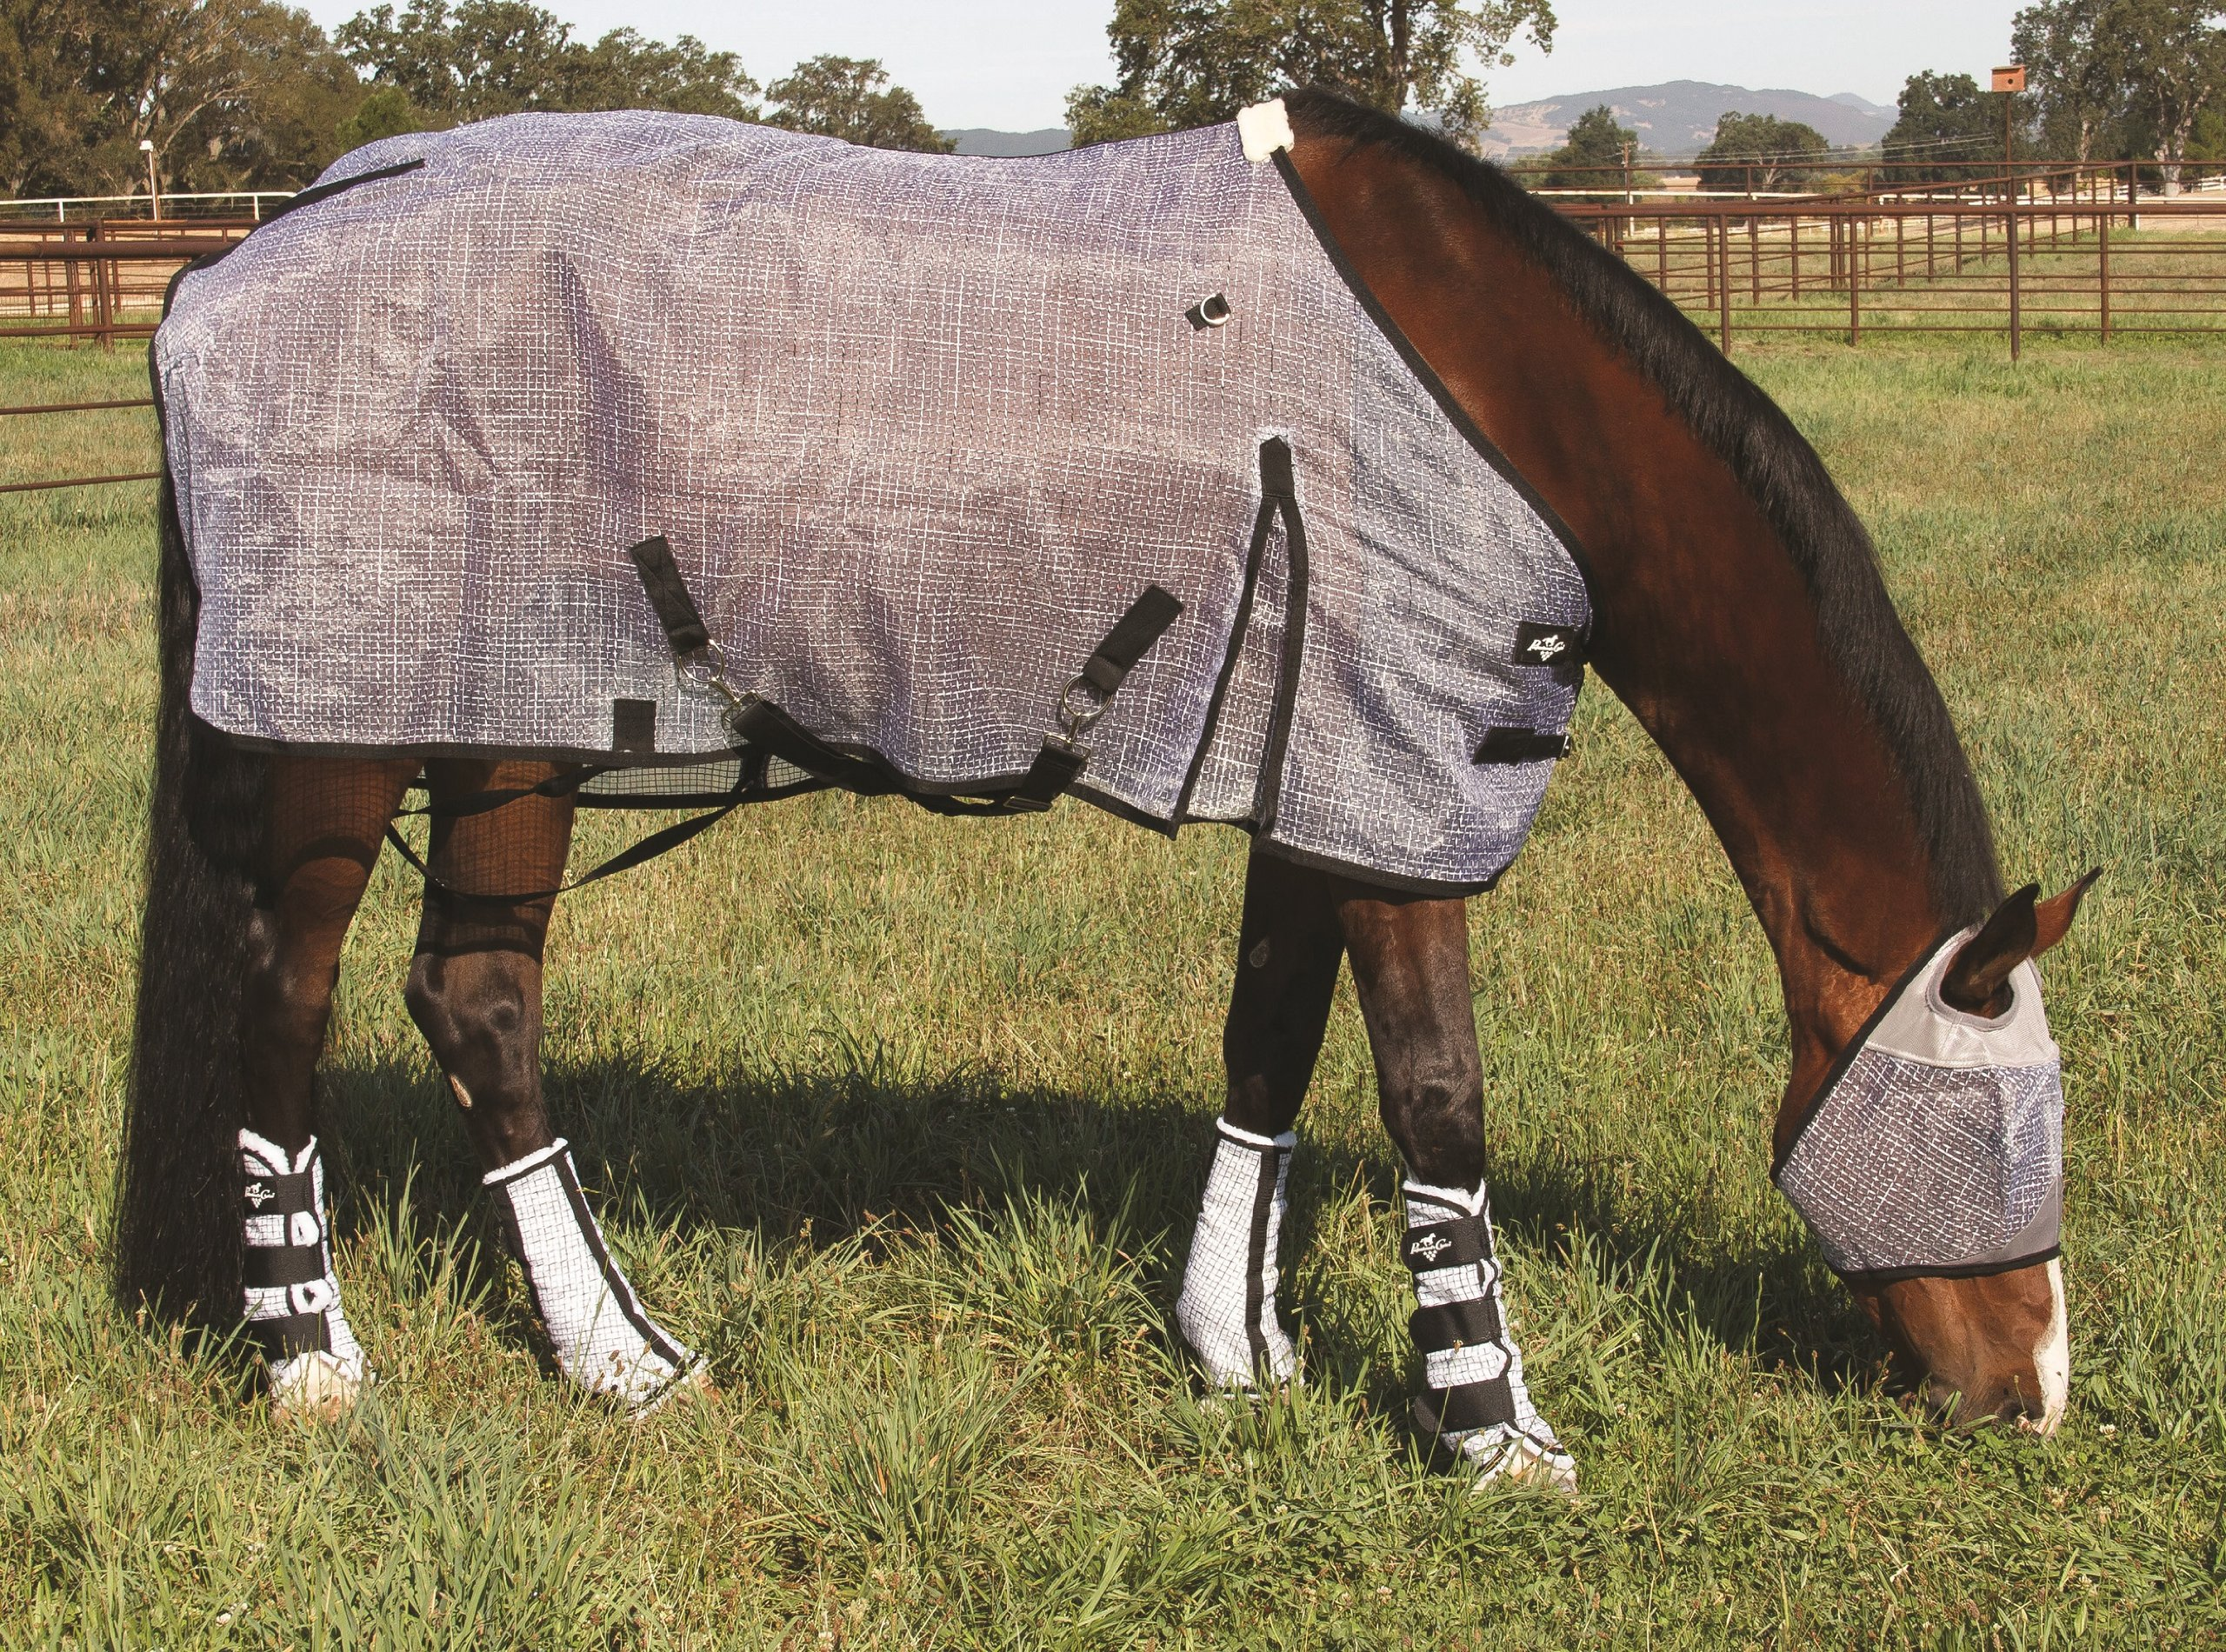 HORSE FLY SHEET BREATHABLE UV PROTECTIVE PROFESSIONAL'S CHOICE (74 INCH)